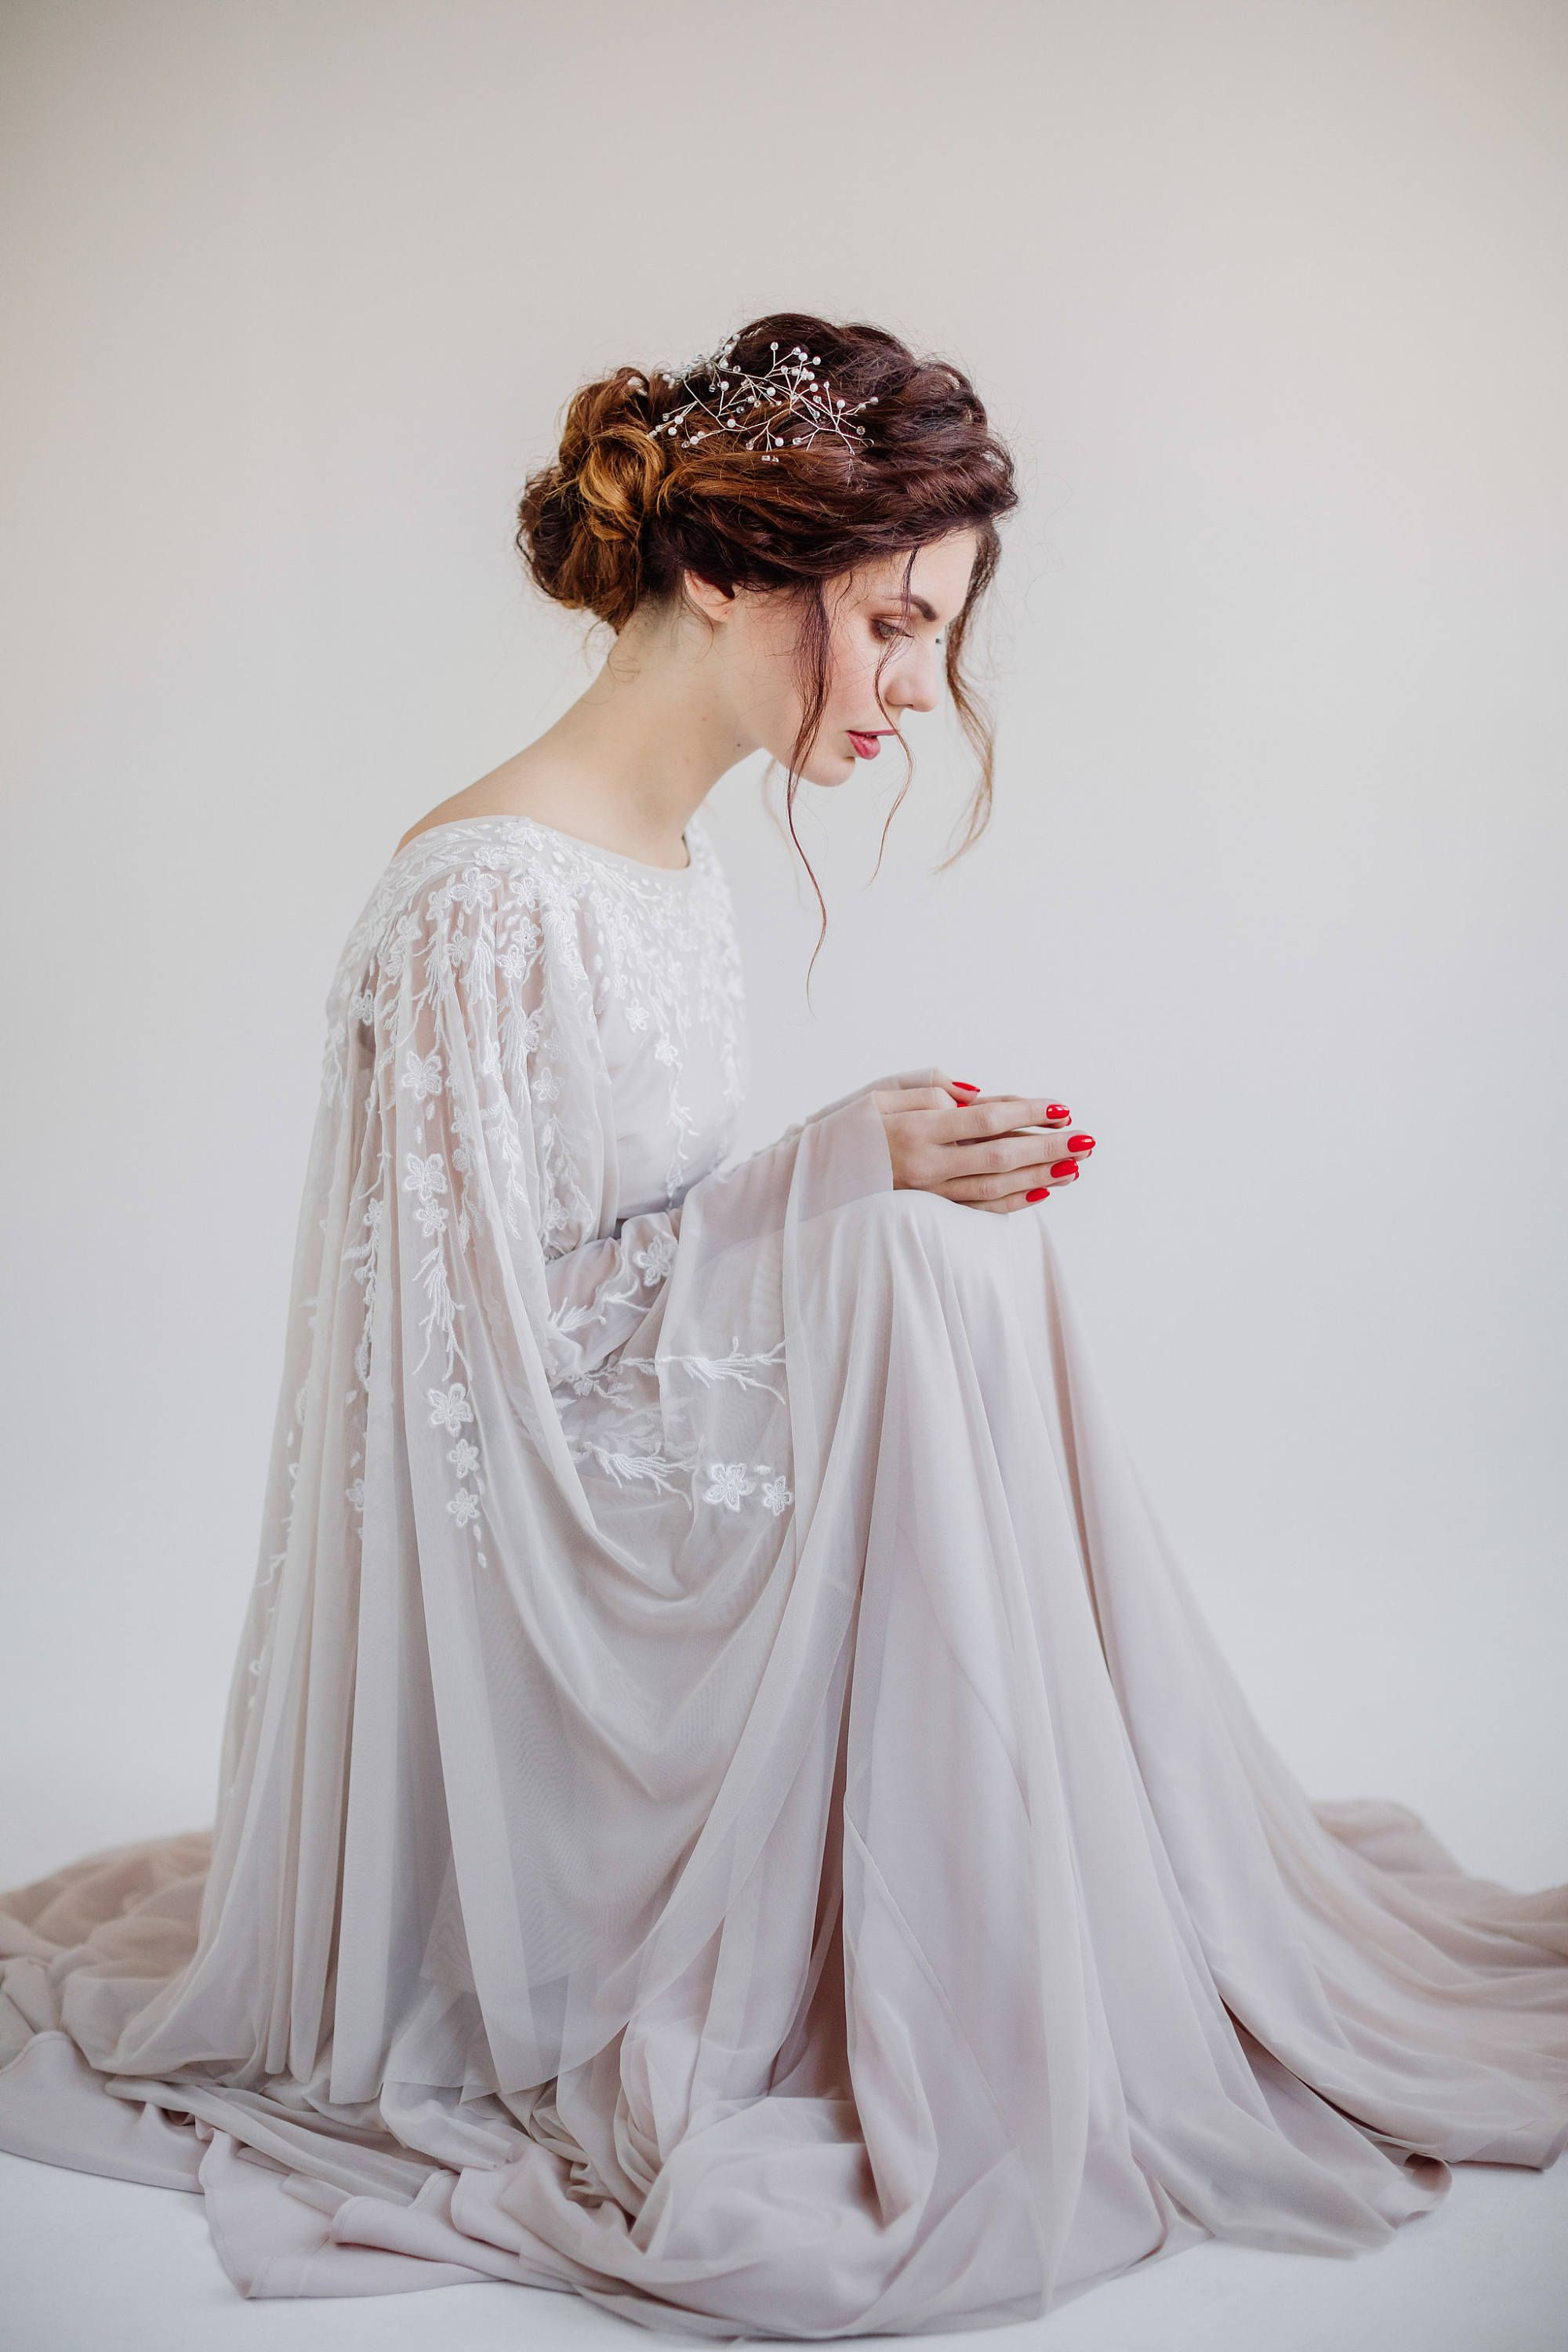 Batwing sleeve wedding dress with embroidered bodice